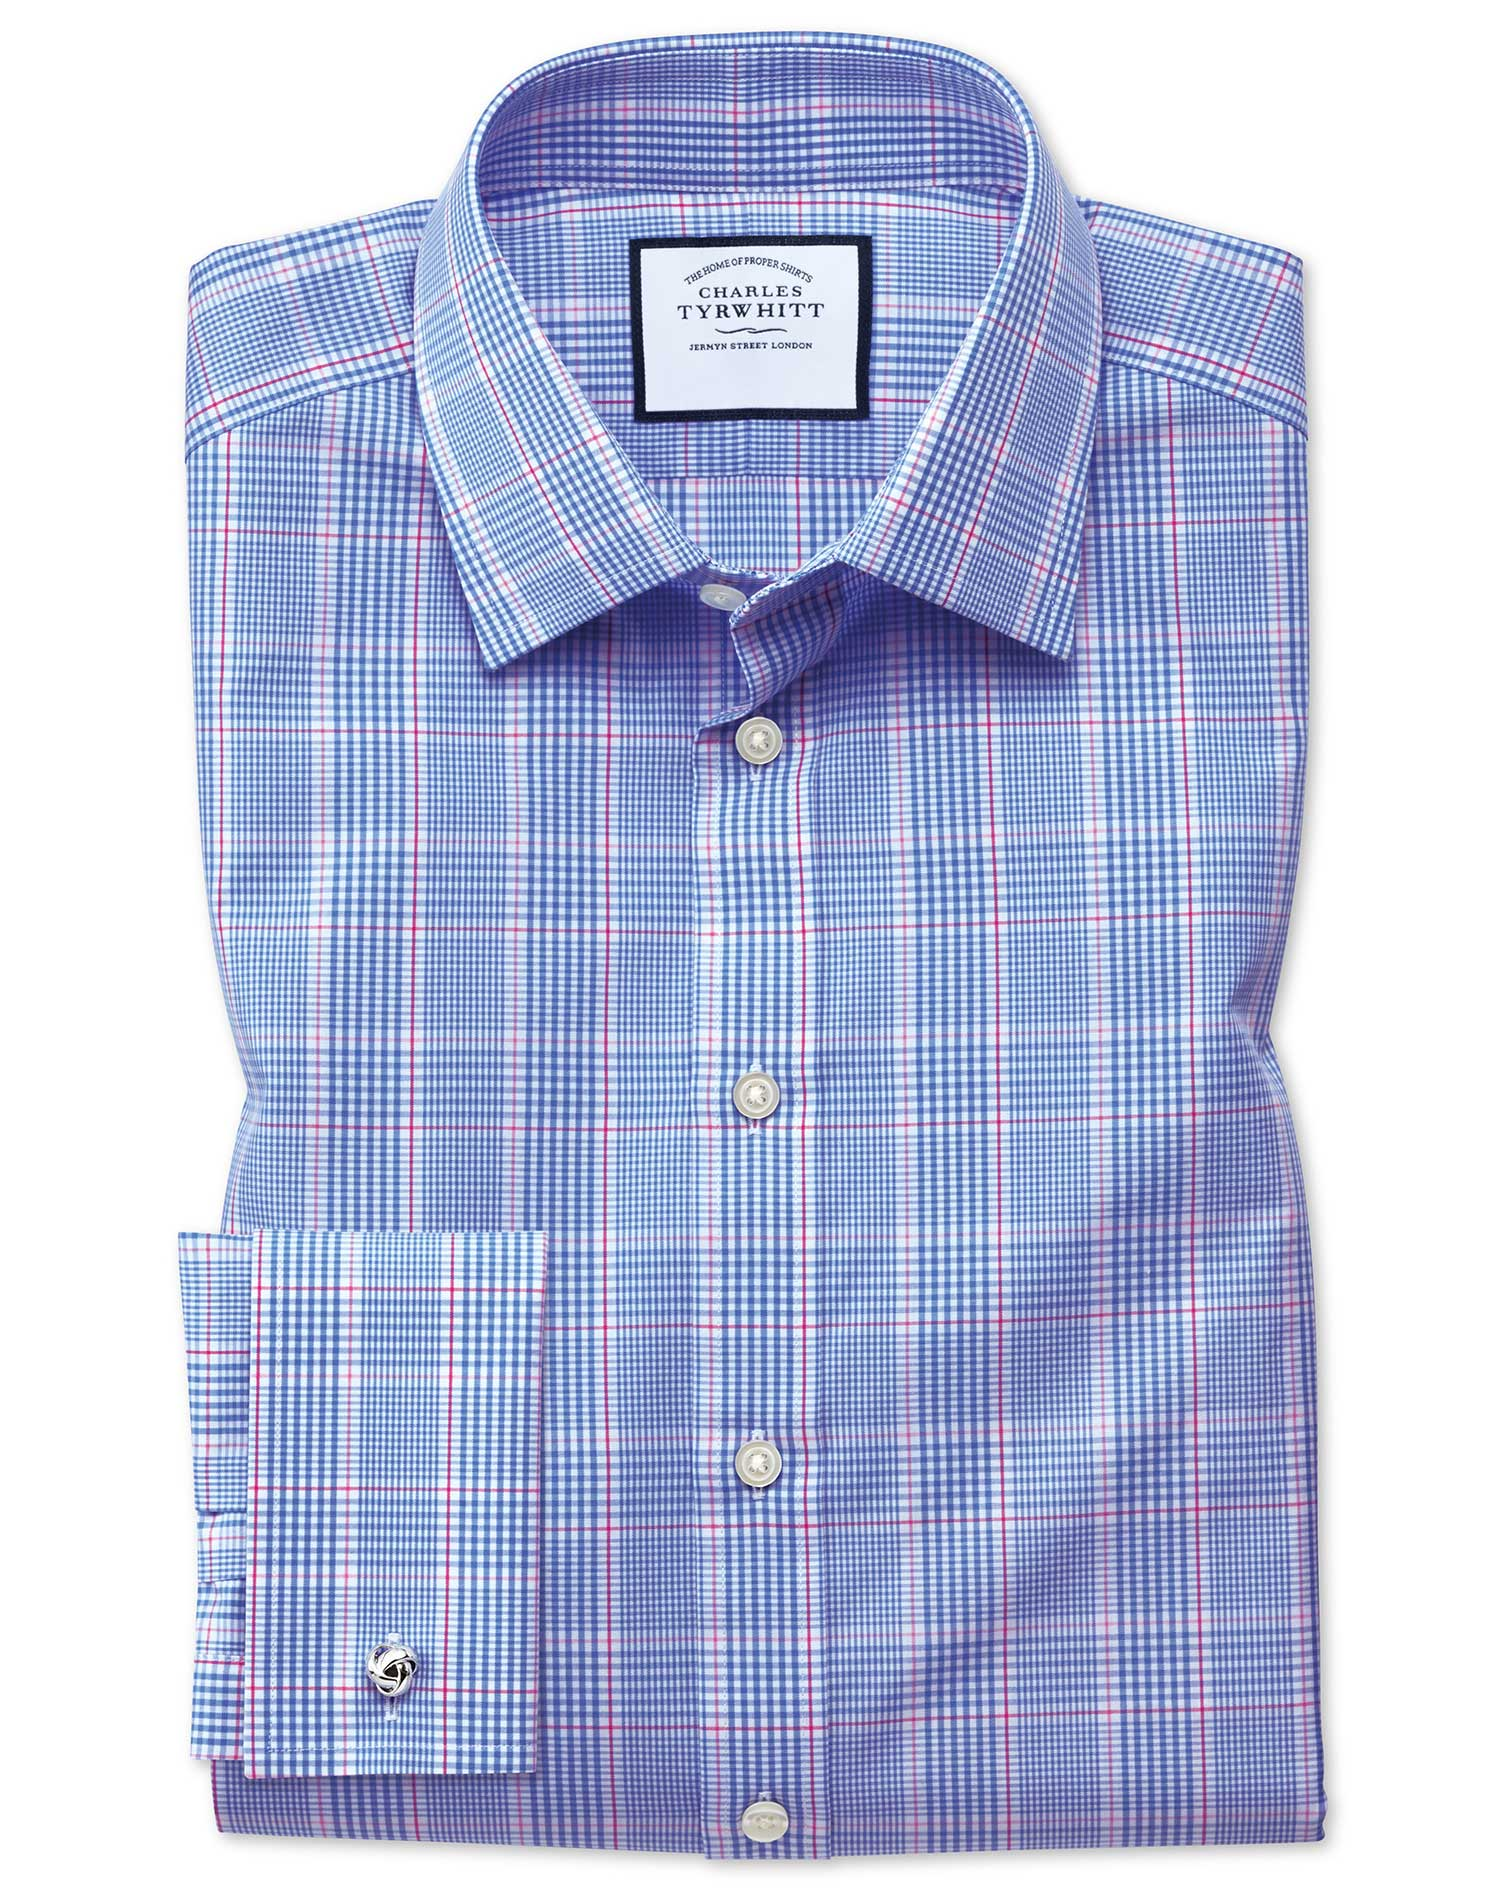 Extra Slim Fit Prince Of Wales Blue Cotton Formal Shirt Double Cuff Size 17.5/35 by Charles Tyrwhitt